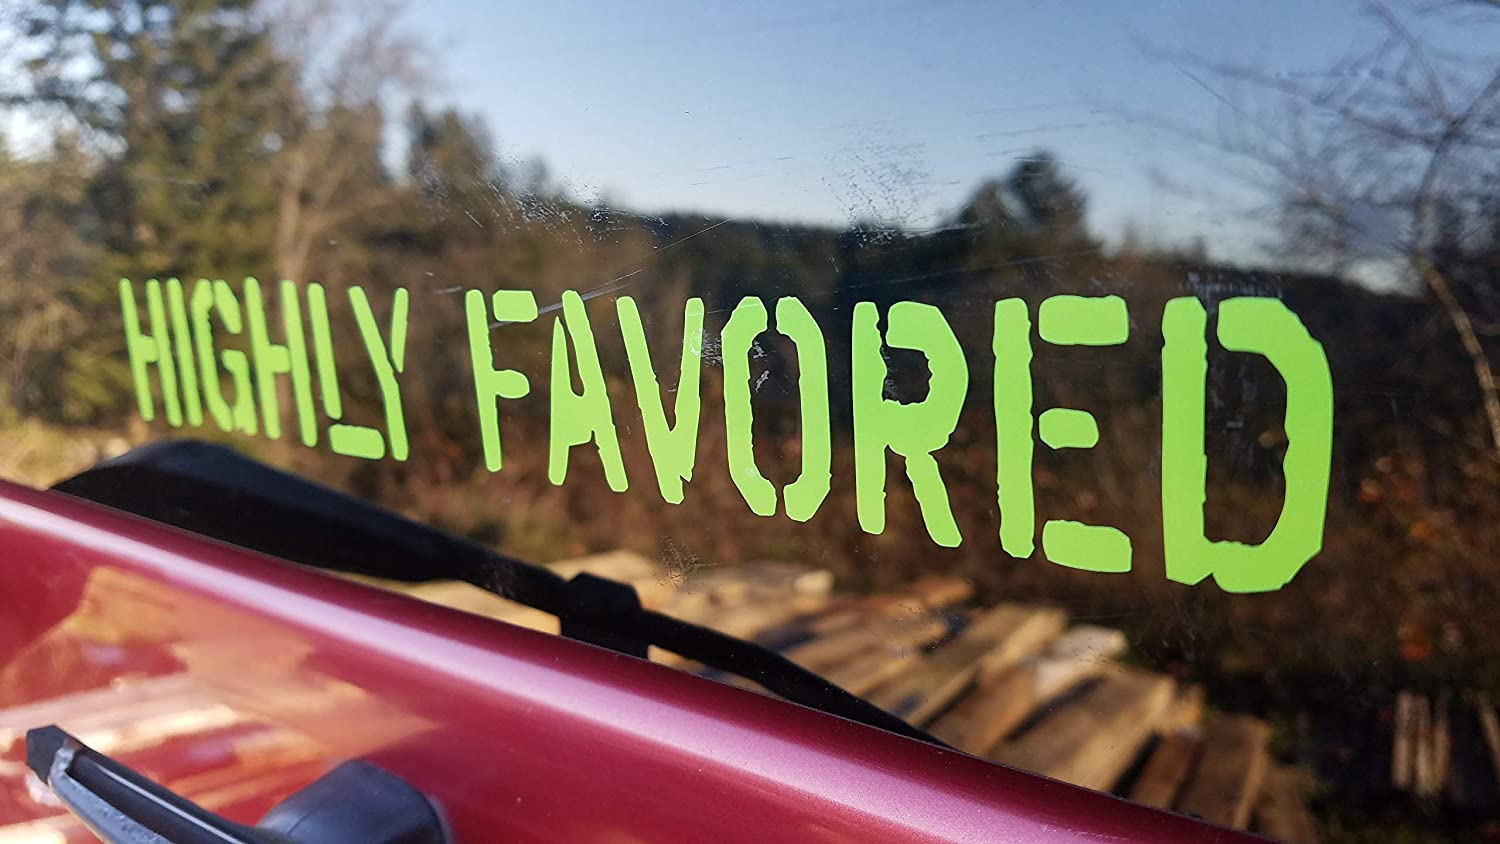 Glossy Orange Highly Favored Vinyl Decal